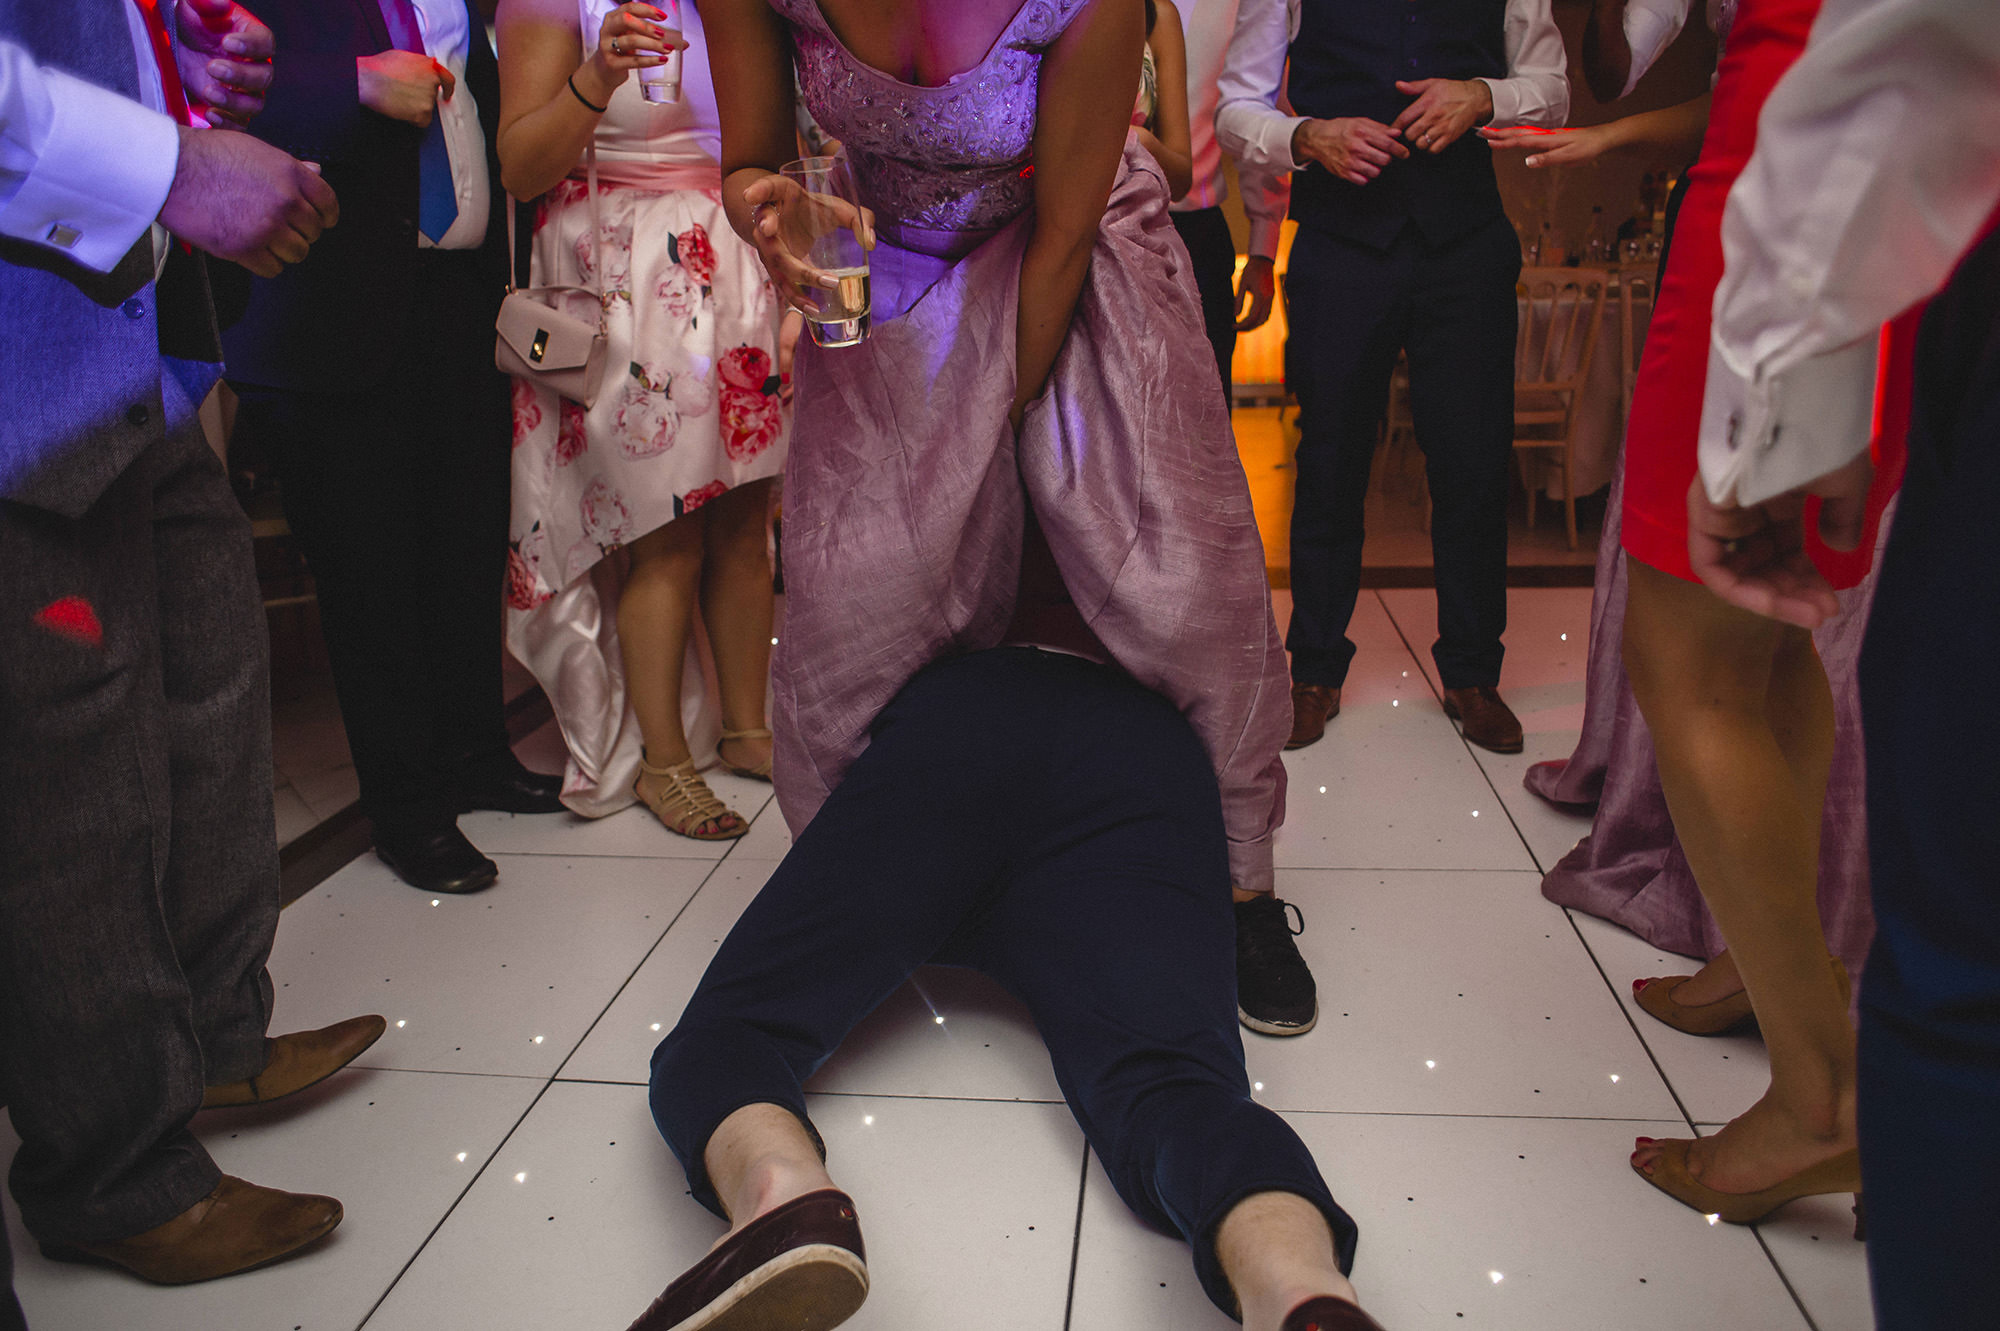 party antics at the wedding reception